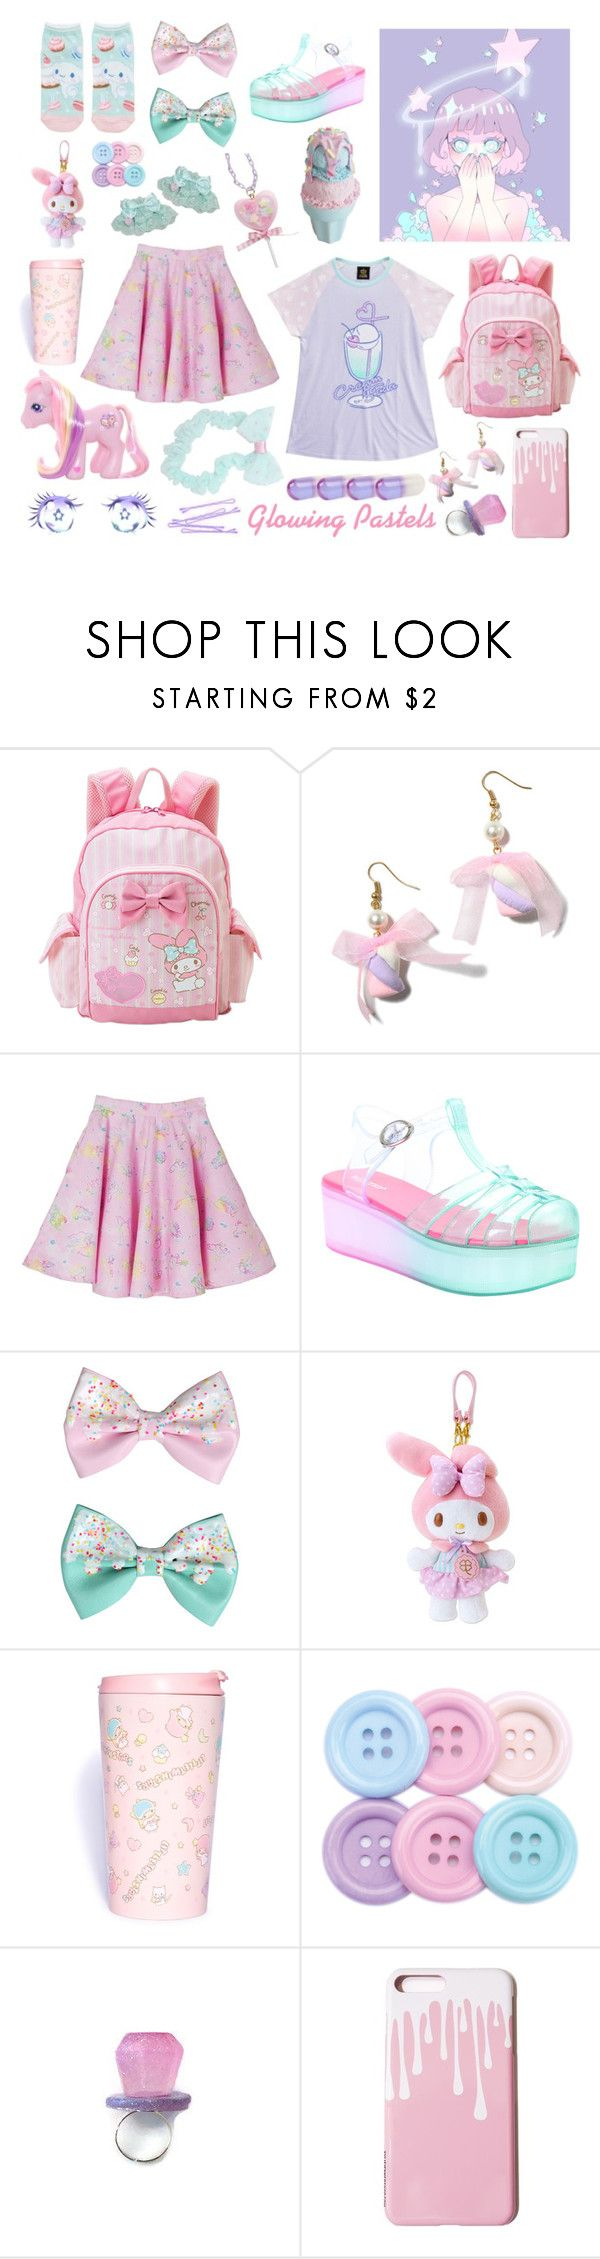 """Glowing Pastels"" by melodyfire ❤ liked on Polyvore featuring My Little Pony, Hot Topic, Pink Mint, SANRIO and Jonathan Adler"